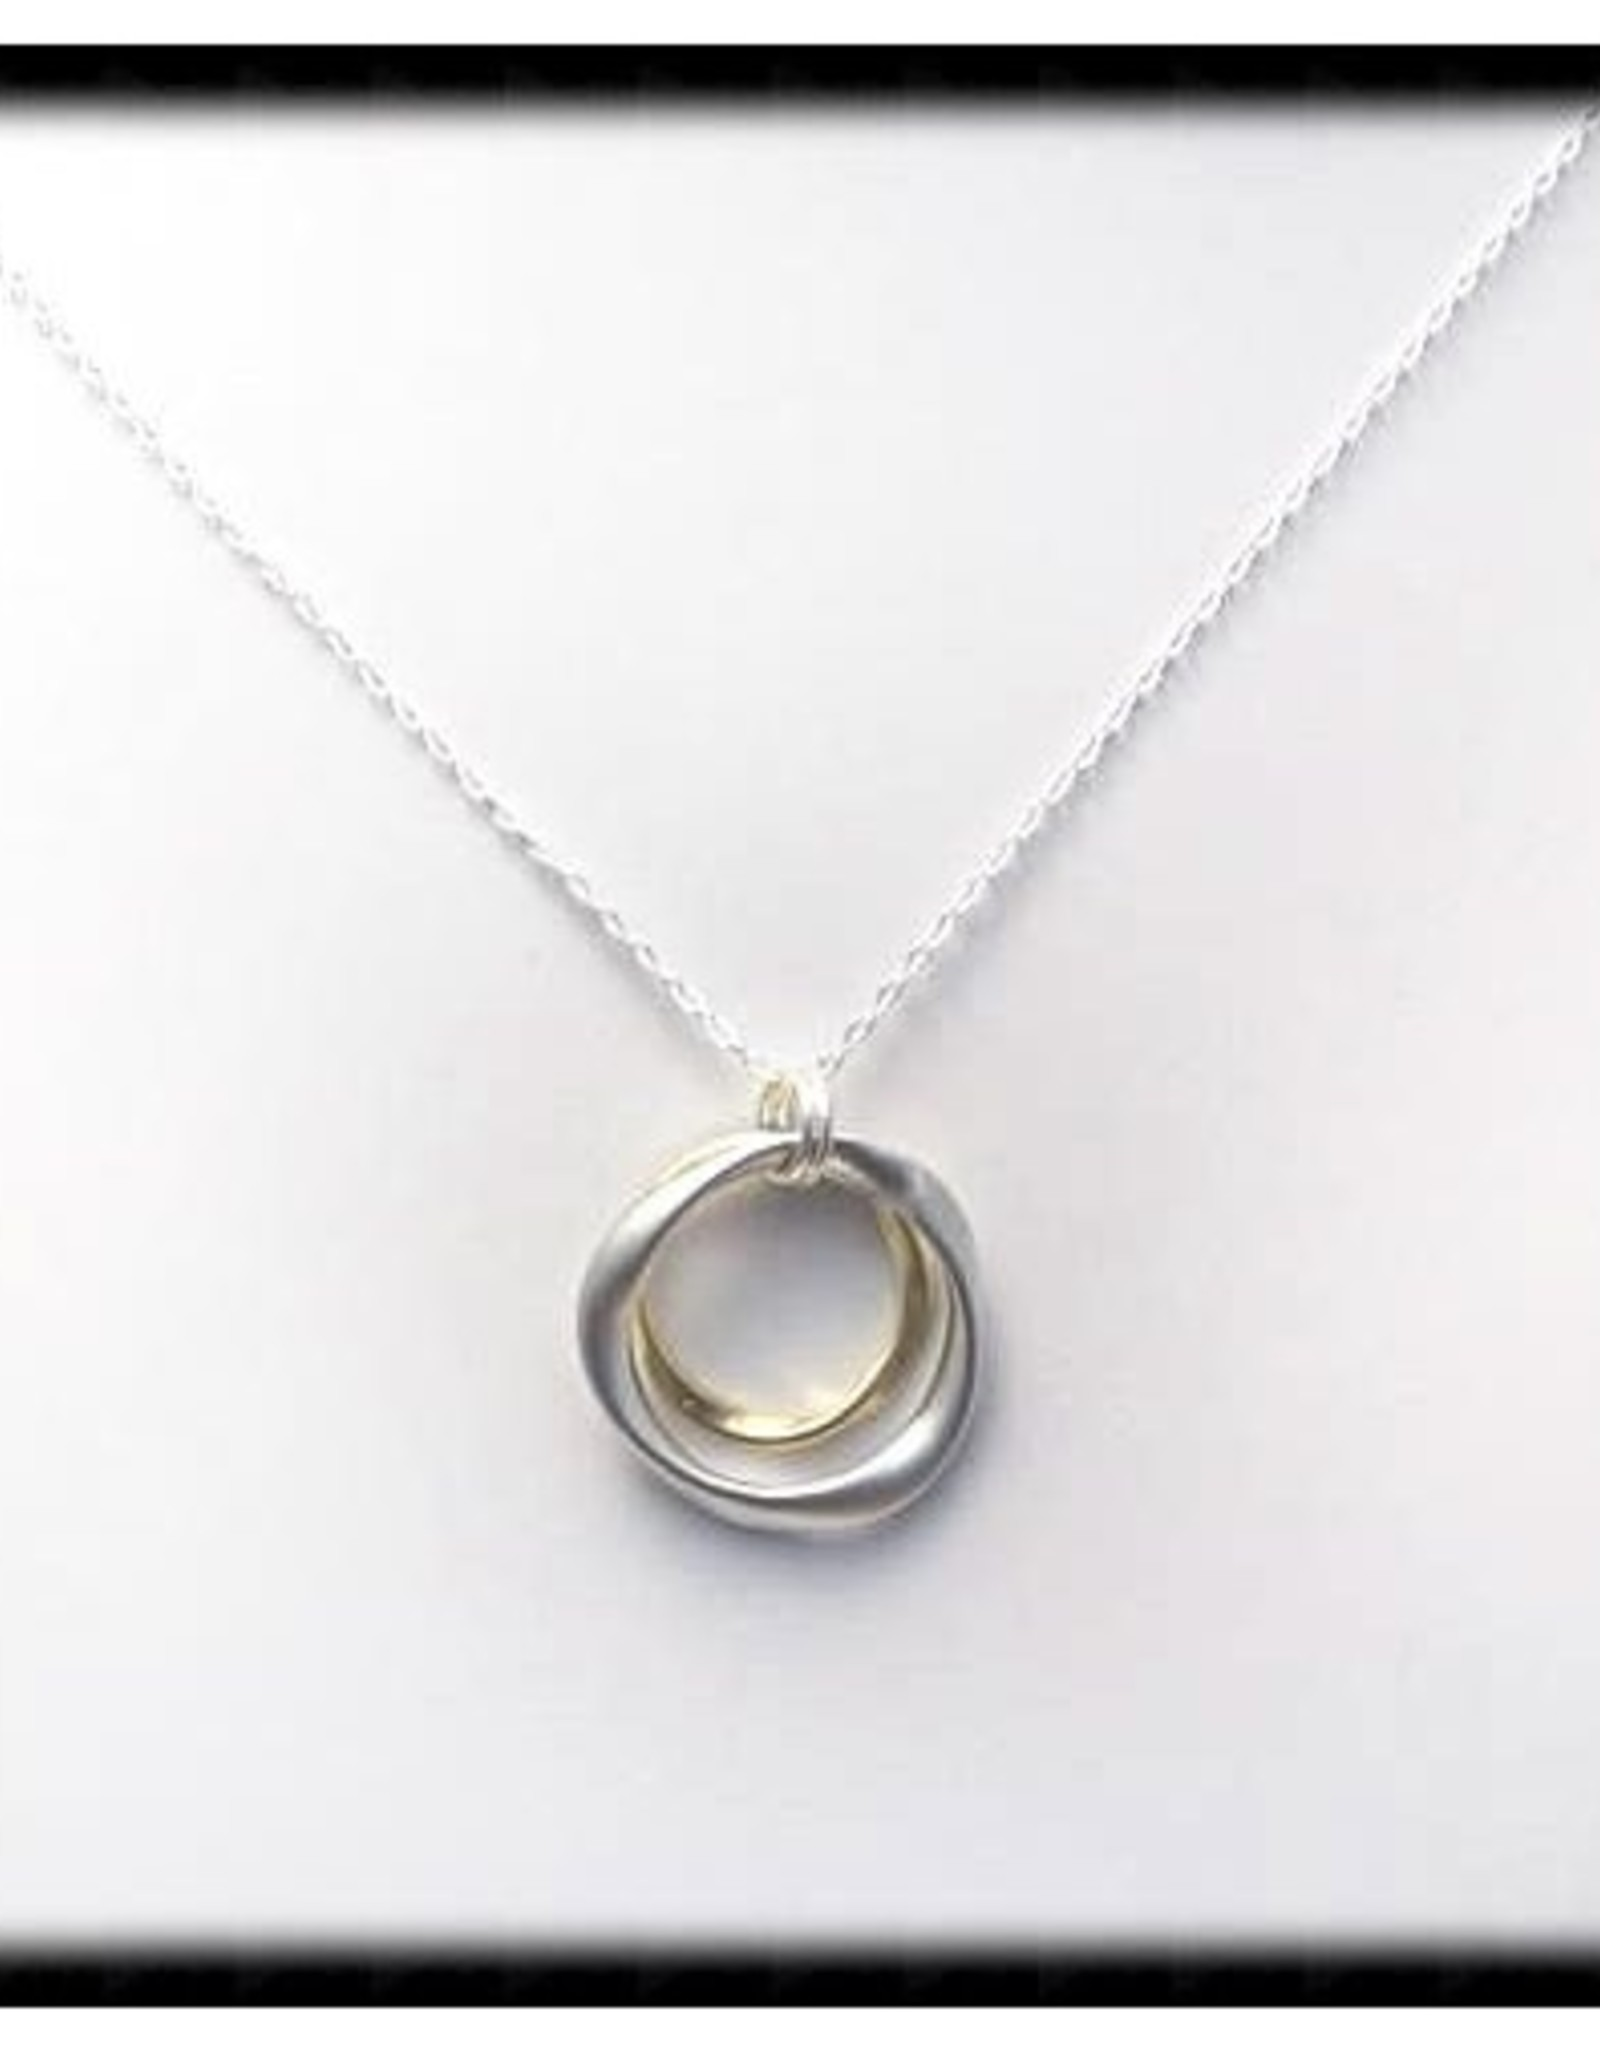 The Beaded Wire Hammered Ring Necklace